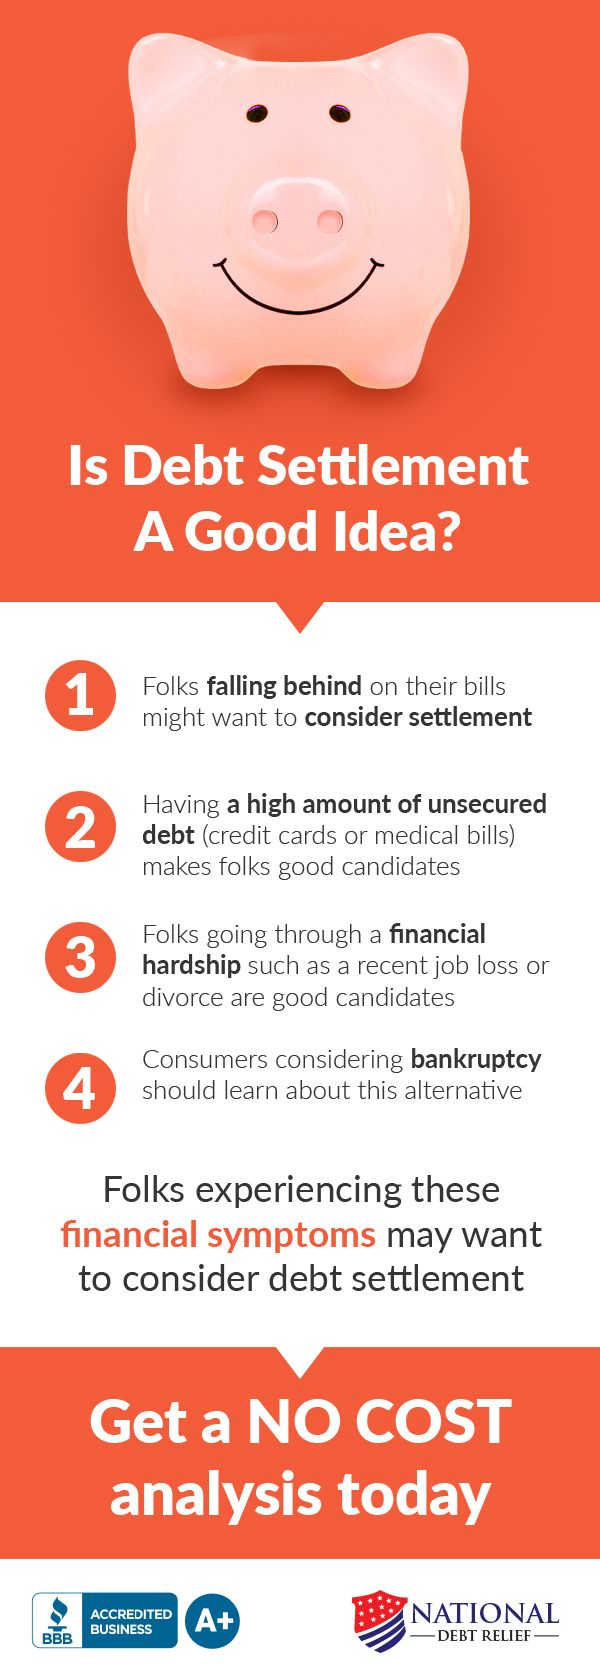 Folks struggling with a mountain of credit card debt may want to consider debt settlement as a viable alternative to filing bankruptcy. National Debt Relief offers a proven plan to resolve credit card debt with no upfront fees and no monthly fees. Consumers with over $10,000 in unsecured debt can see if debt settlement makes financial sense with a no cost debt analysis with no obligation.